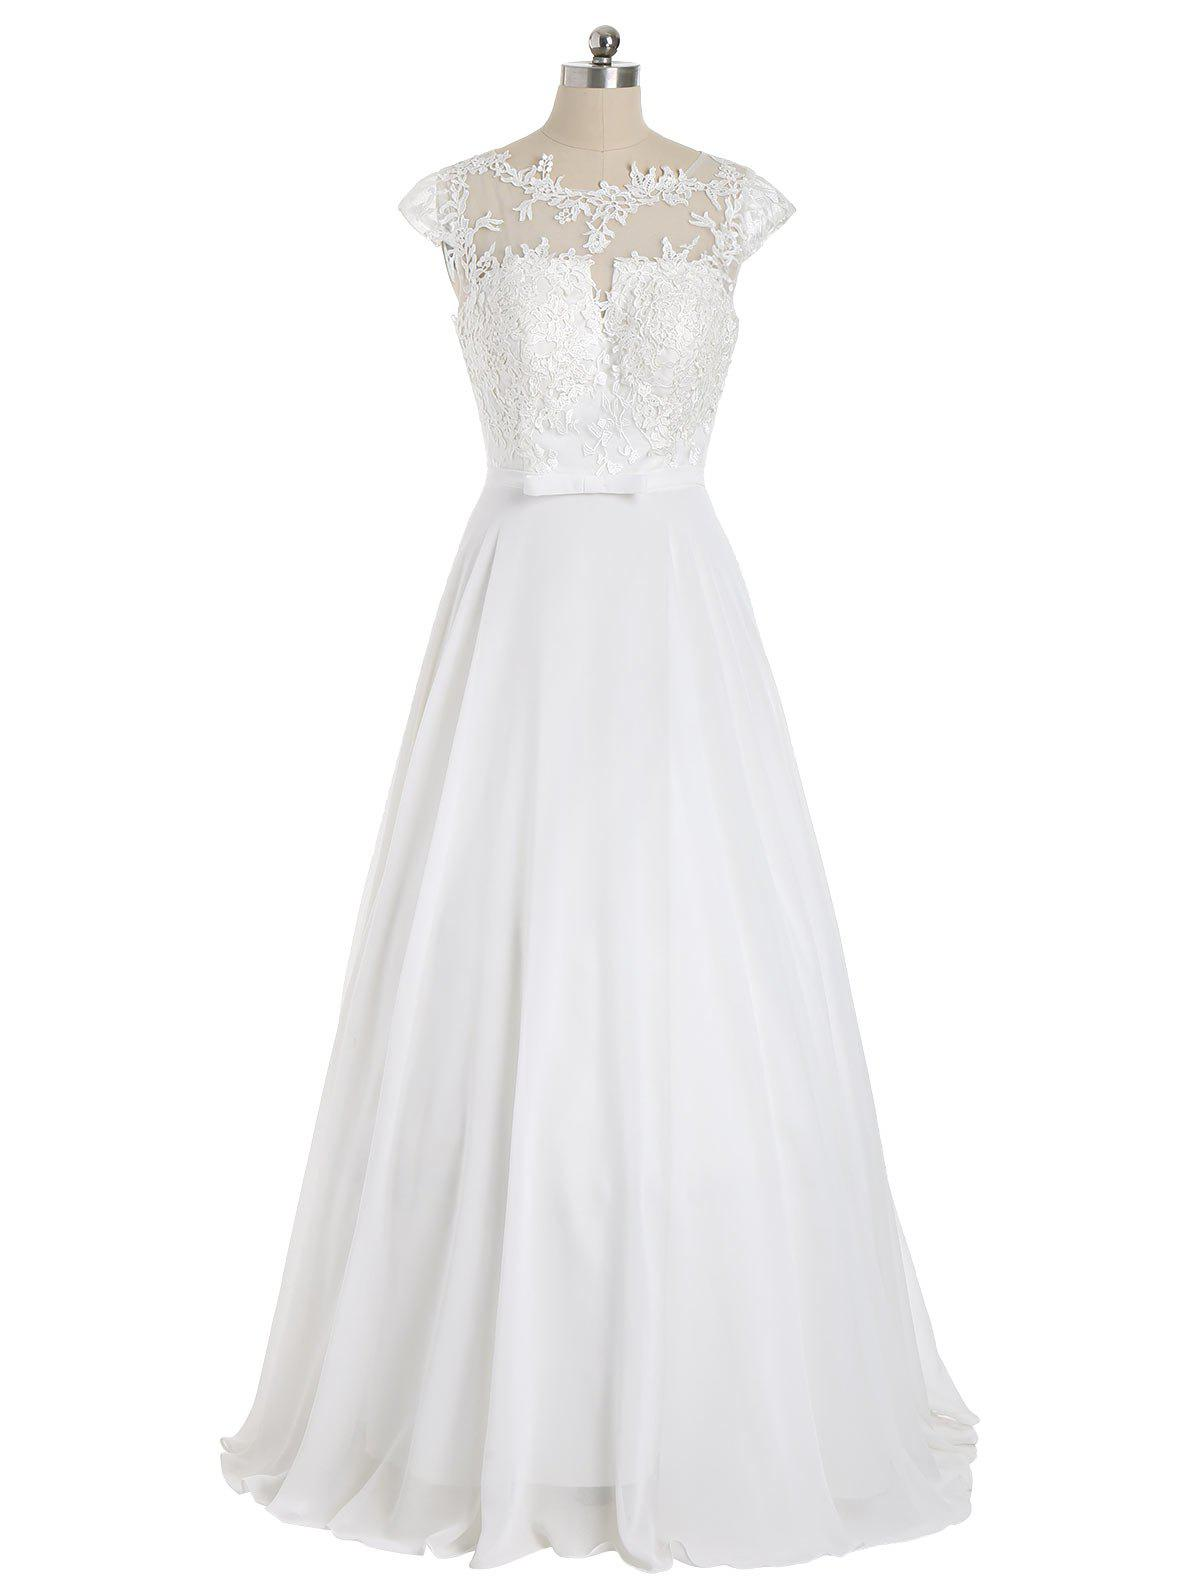 Cap Sleeve Lace Panel Bowknot Evening Dress - WHITE XL